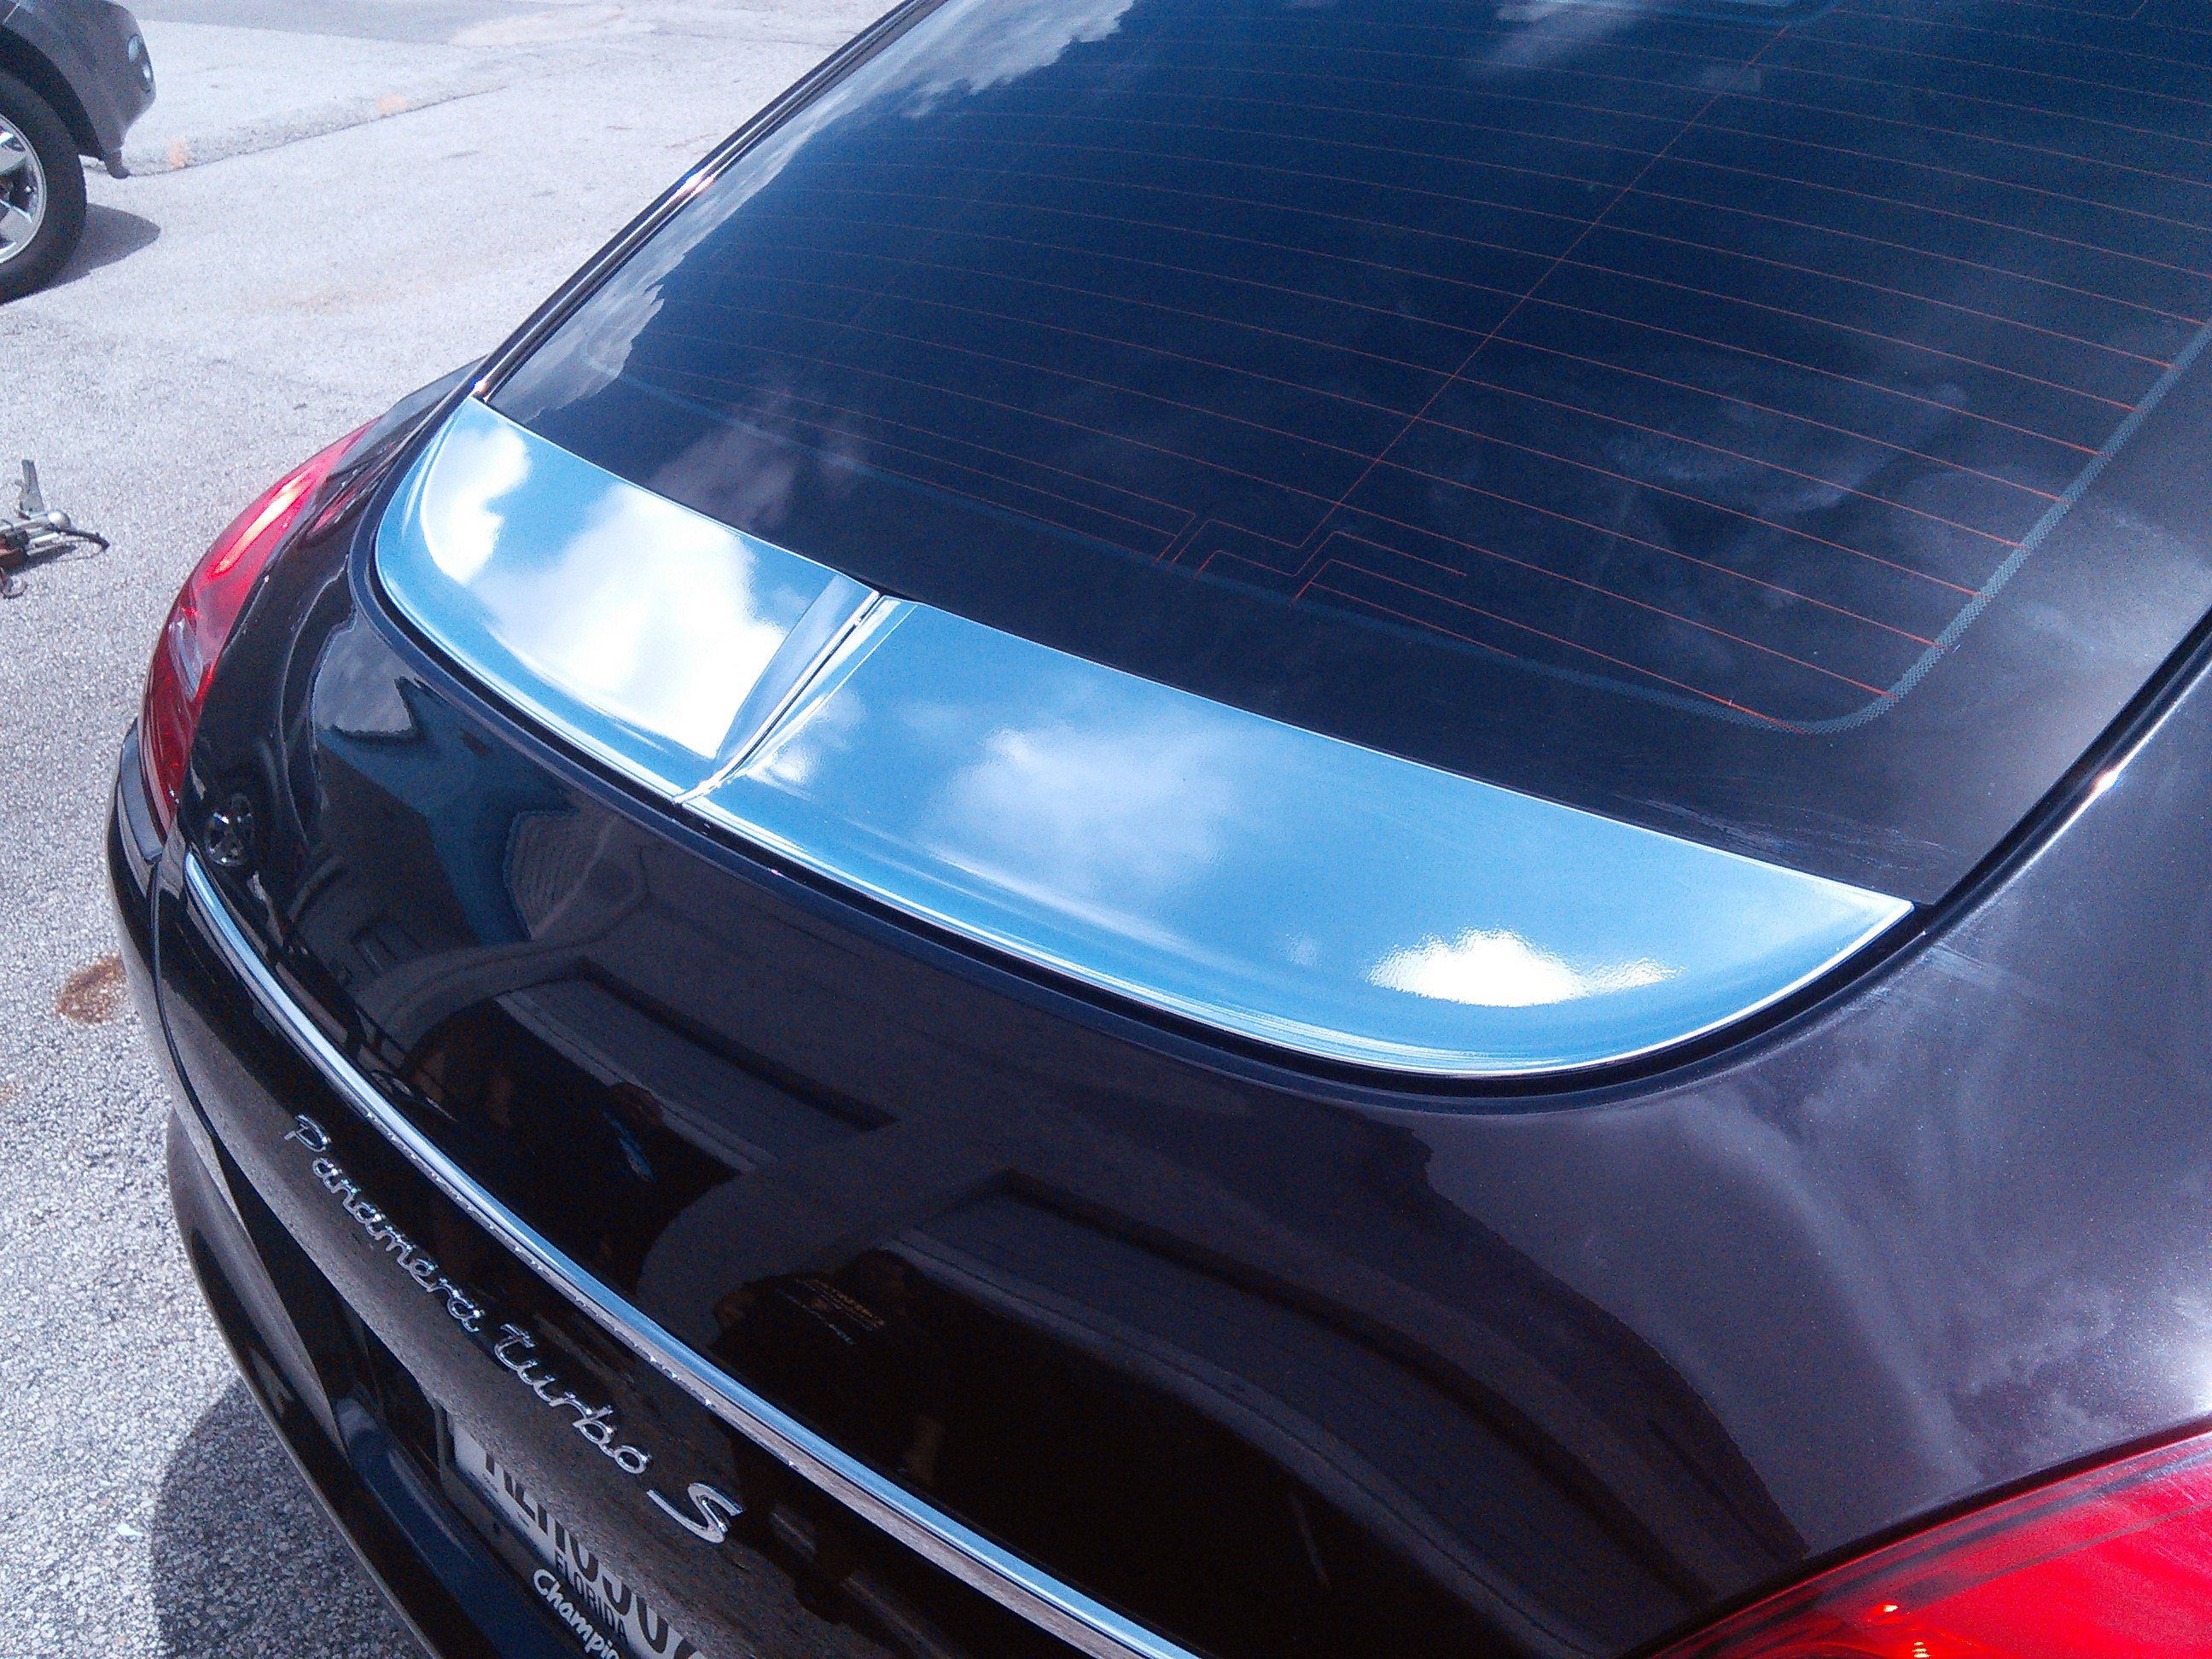 Porsche Panamera Miami Chrome Vinyl Wrapped Rear Spoiler